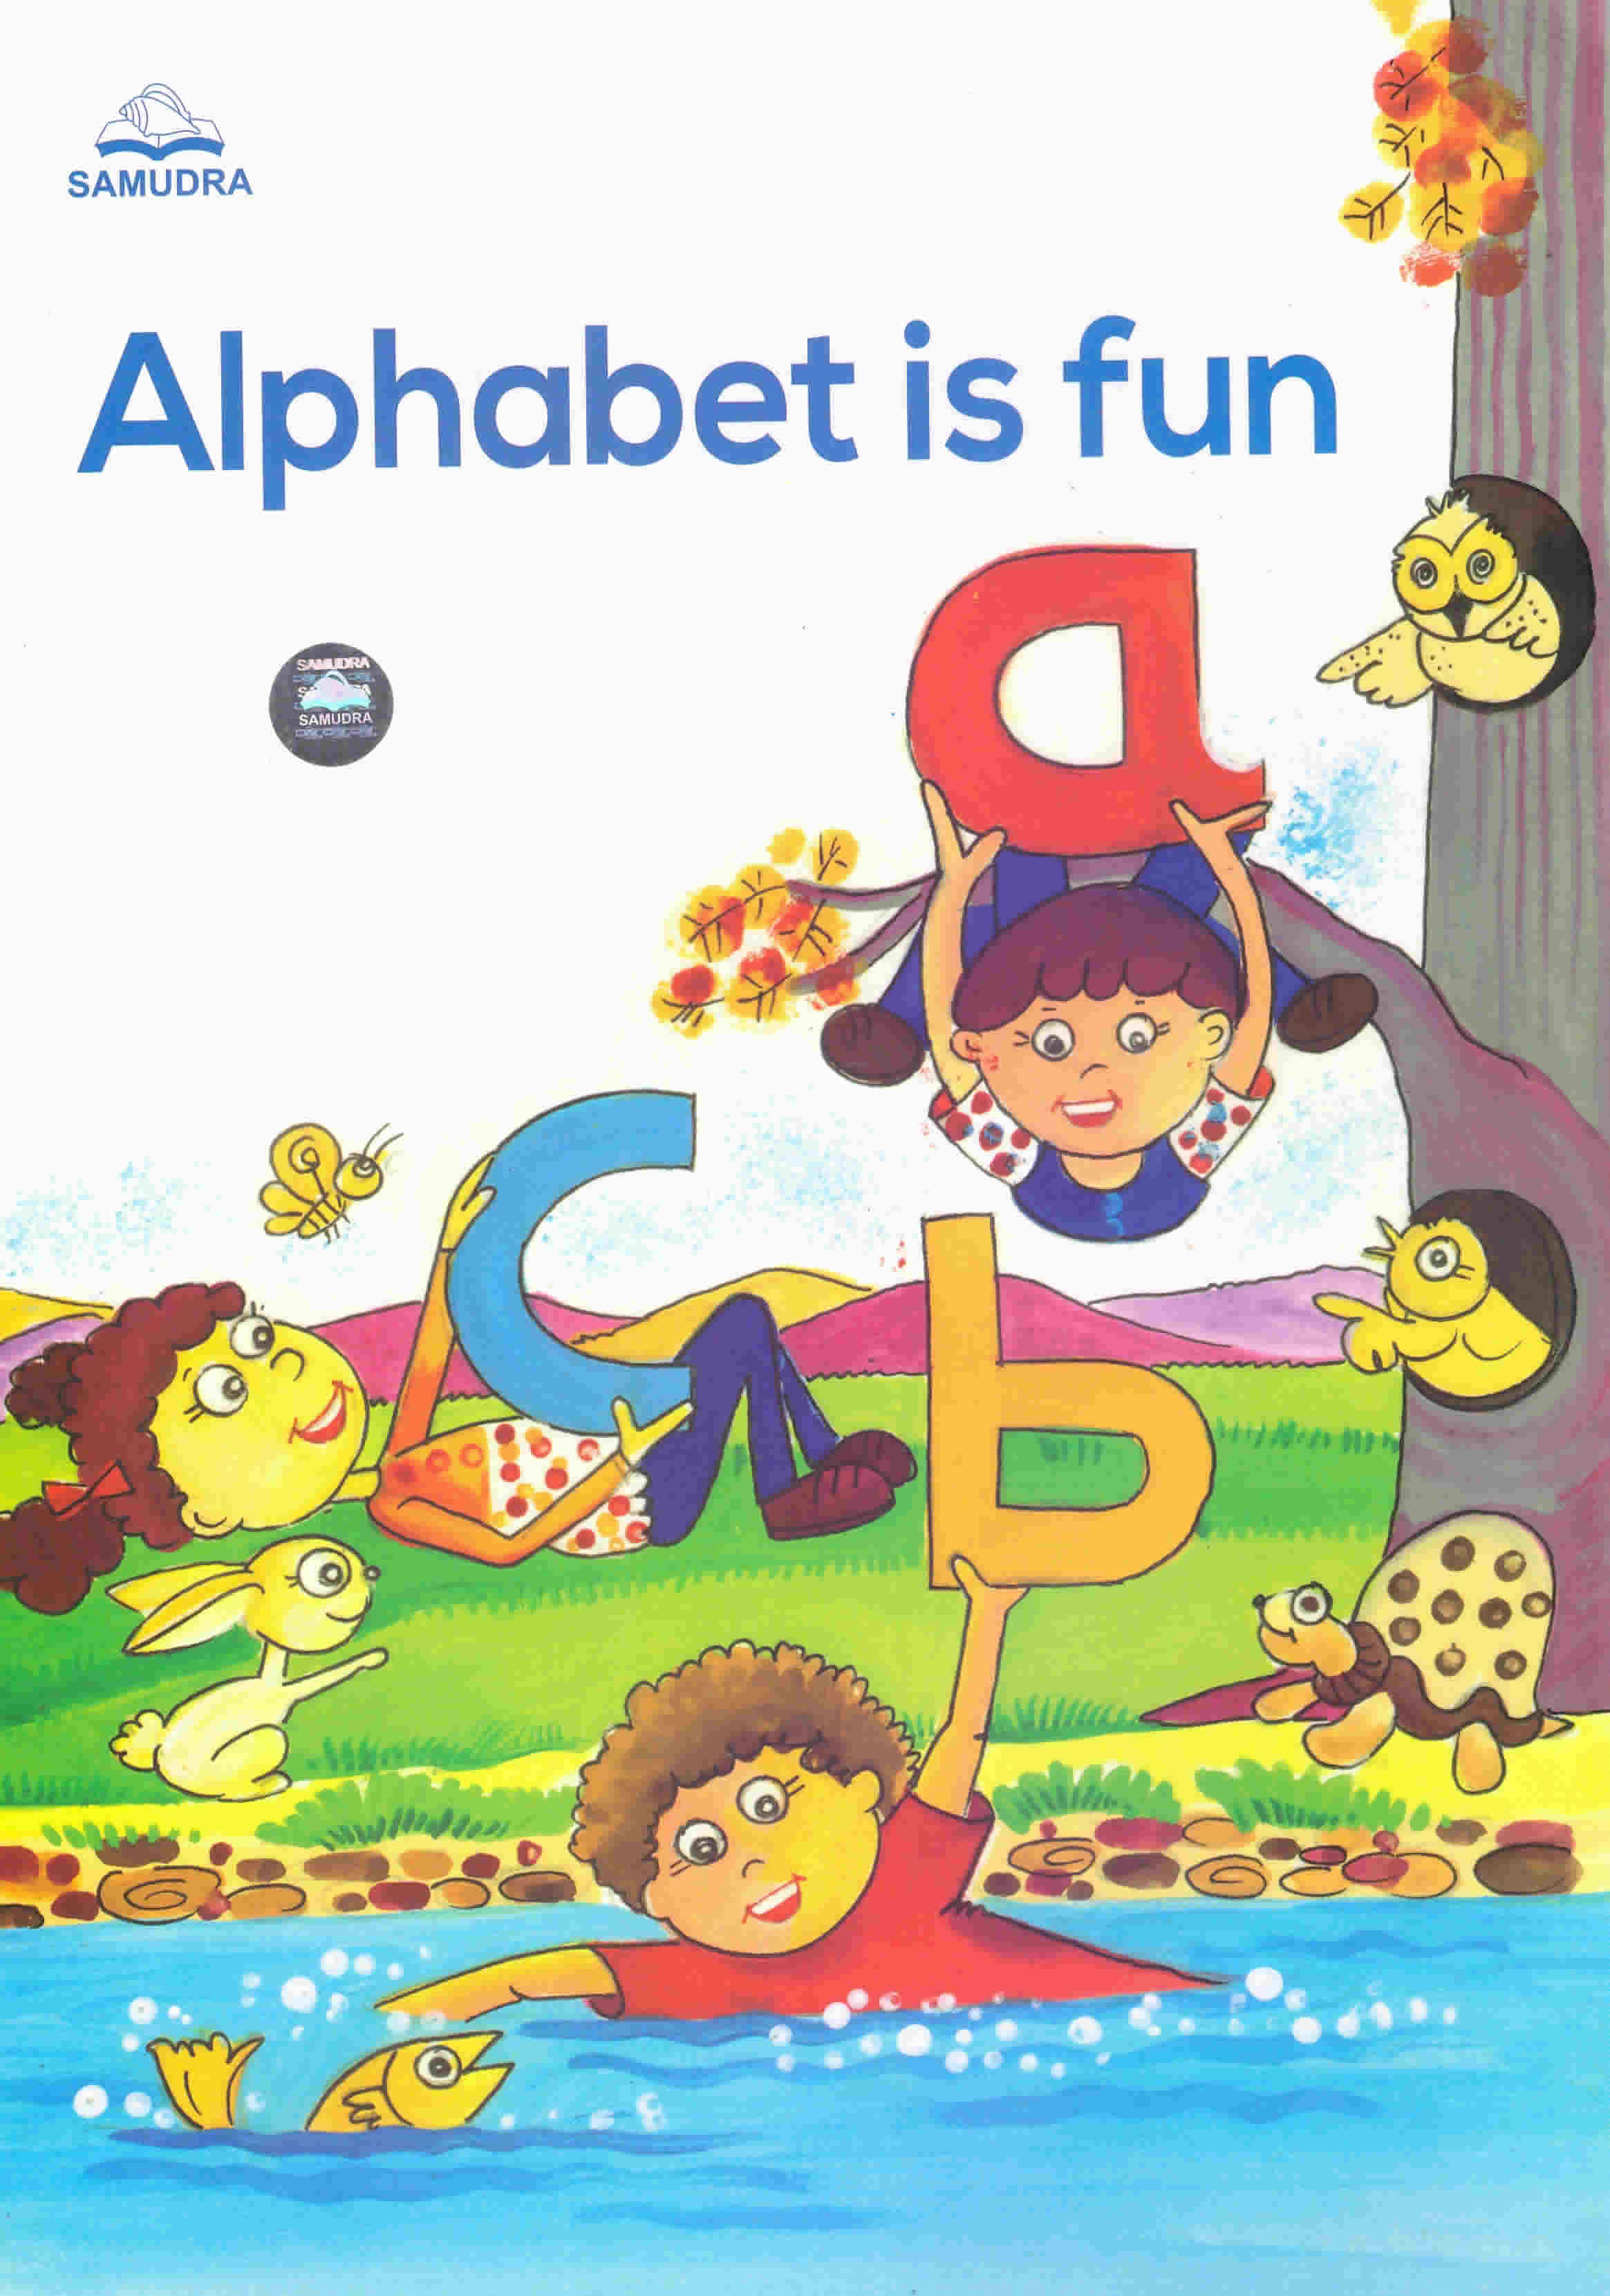 Alphabet is fun